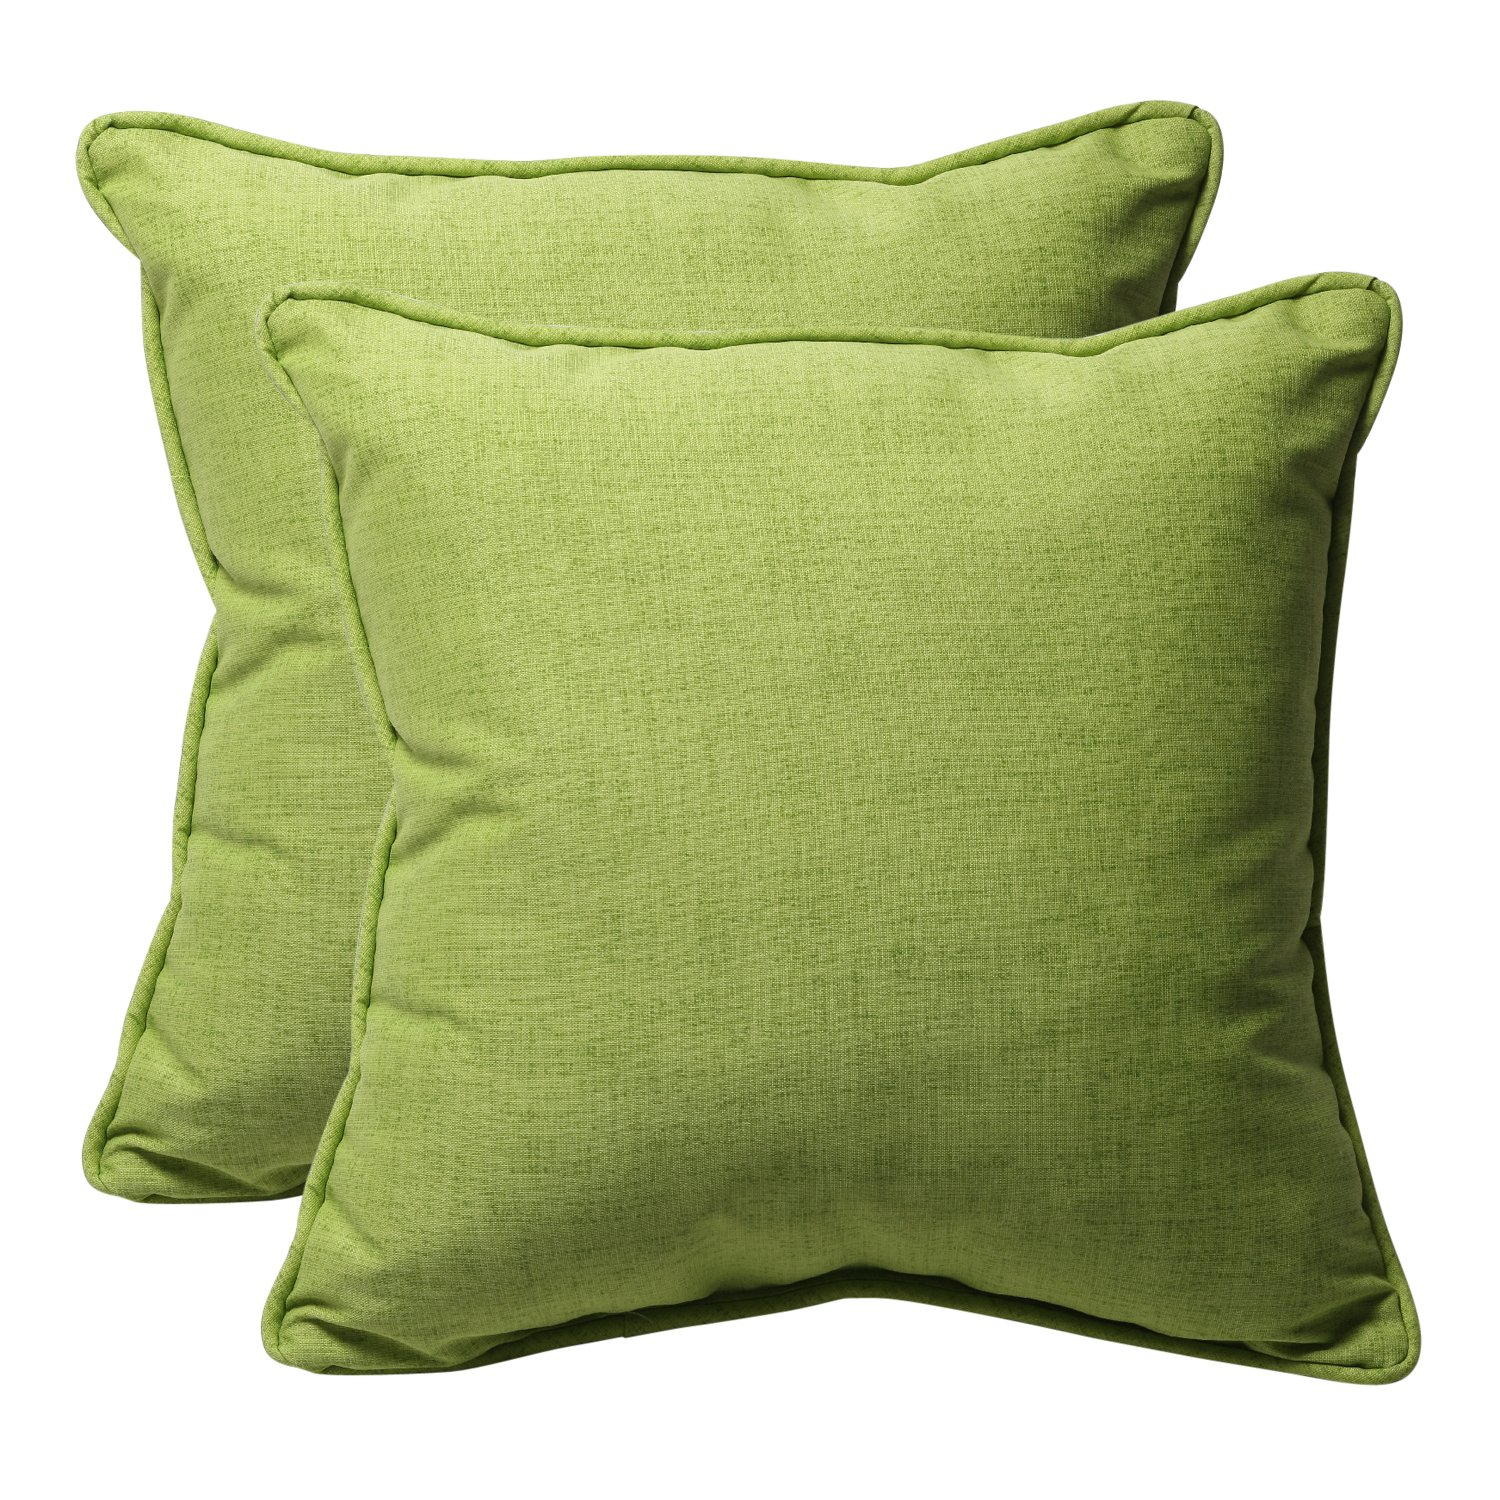 iittala throw blankets origo pillow pillows green